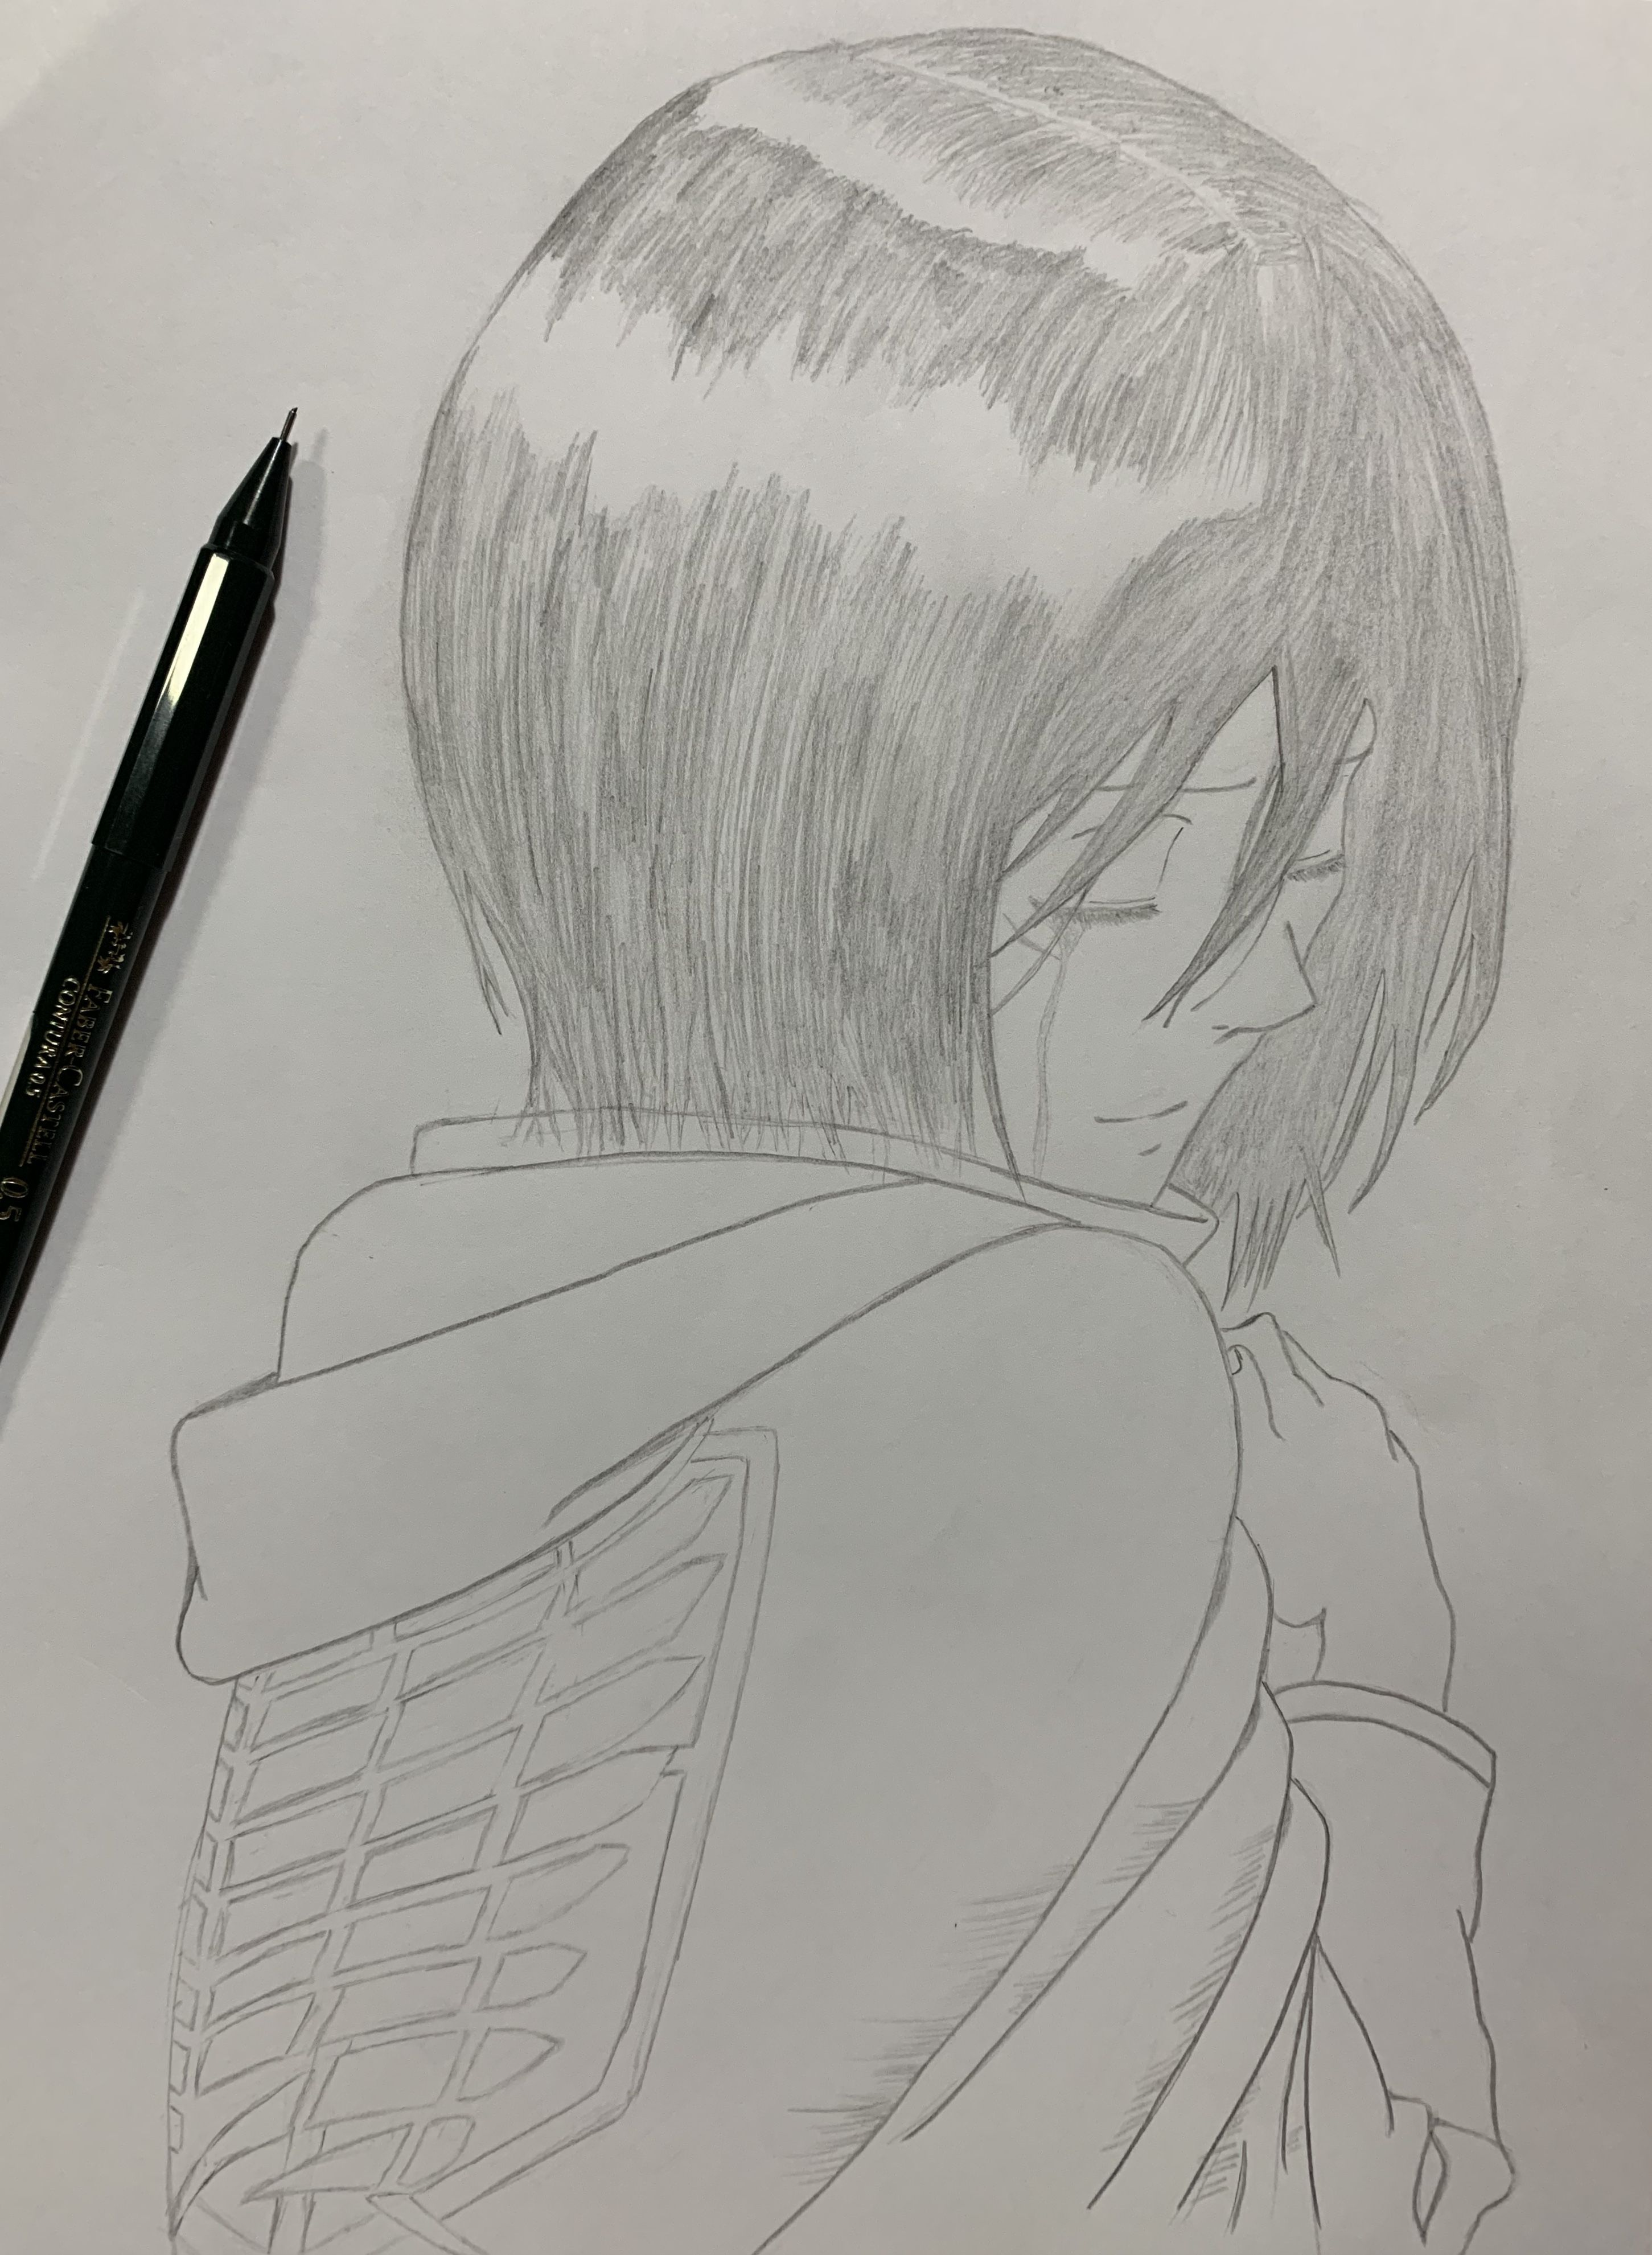 Mikasa from Attack on Titan Anime drawing pencil